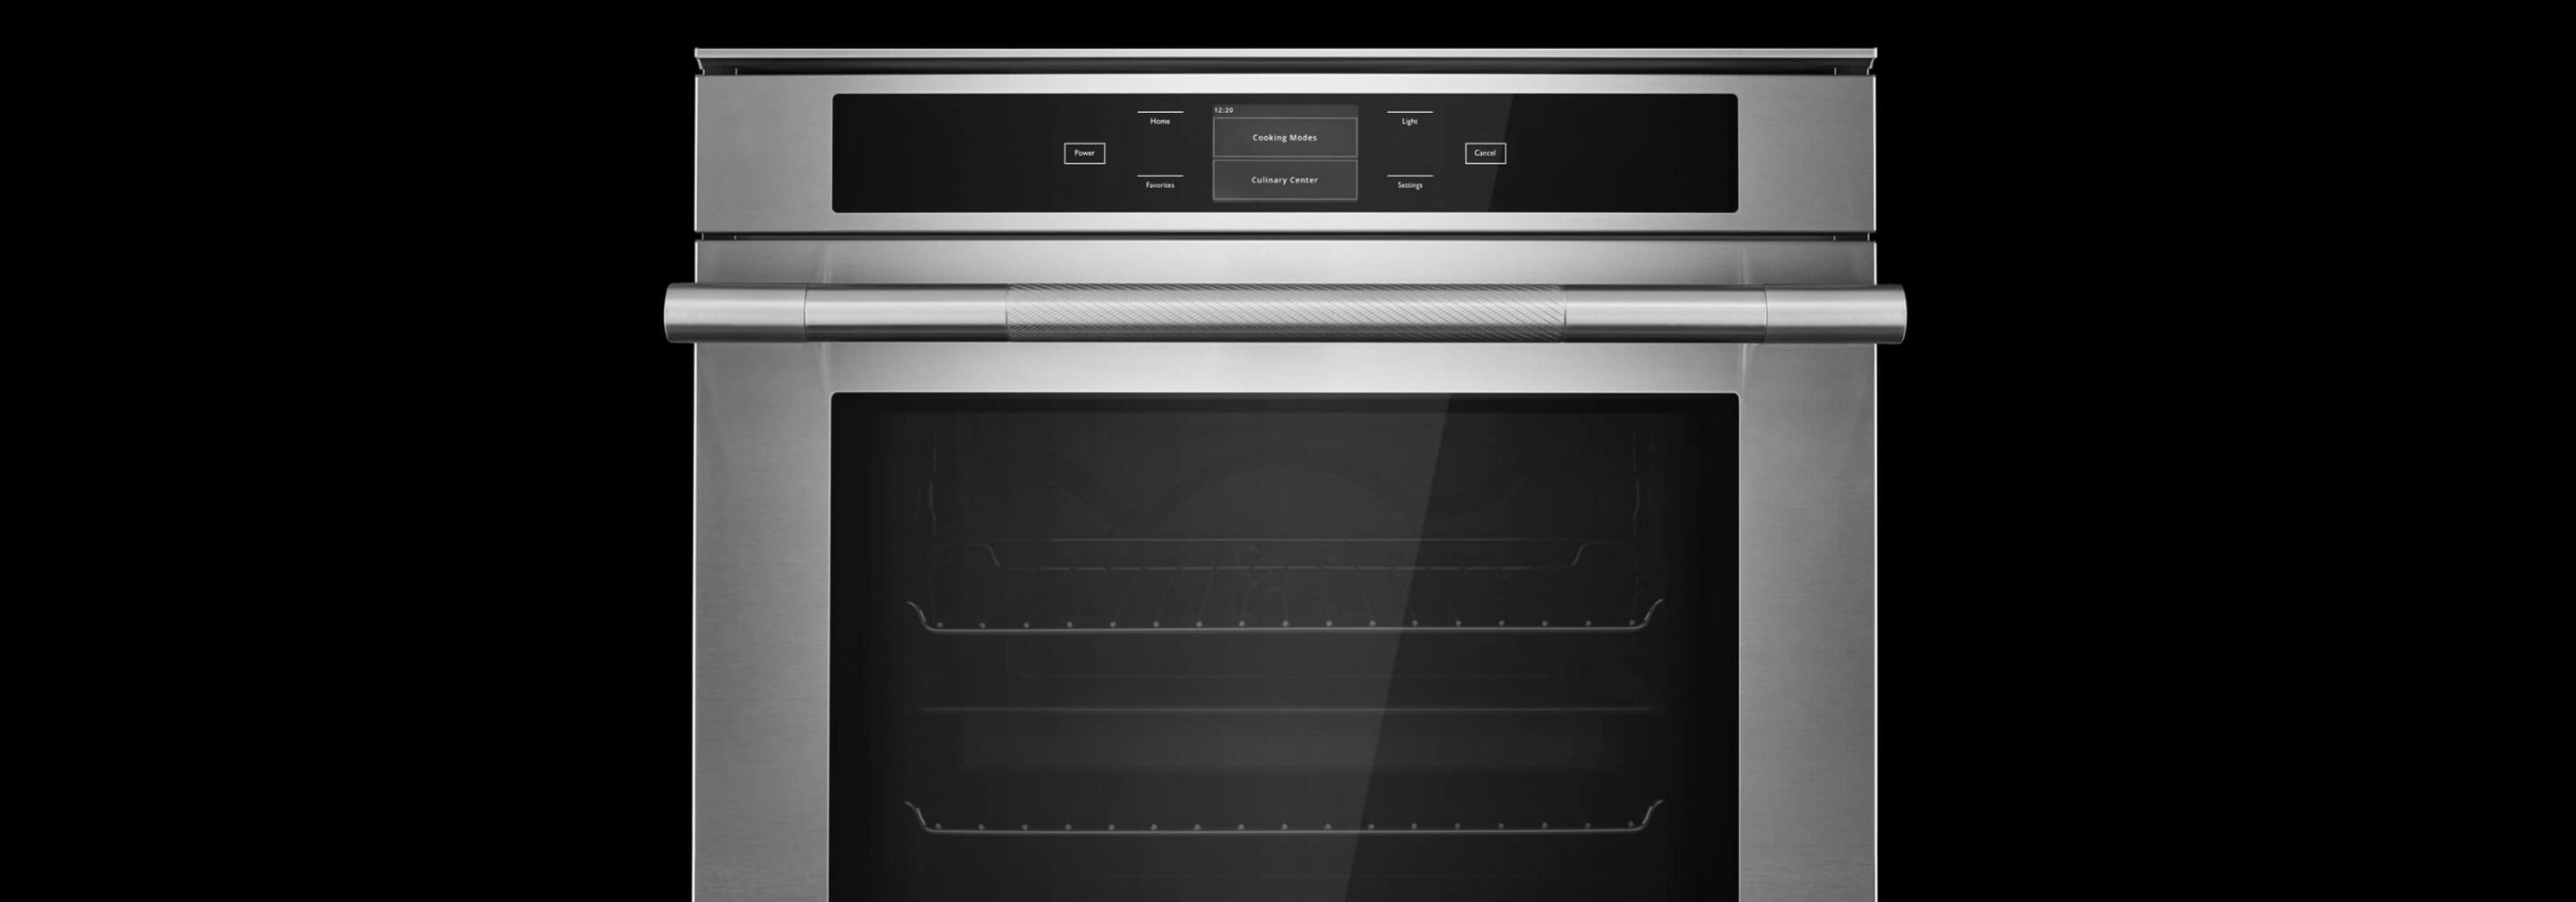 RISE™ 24-inch Built-In Convection Oven